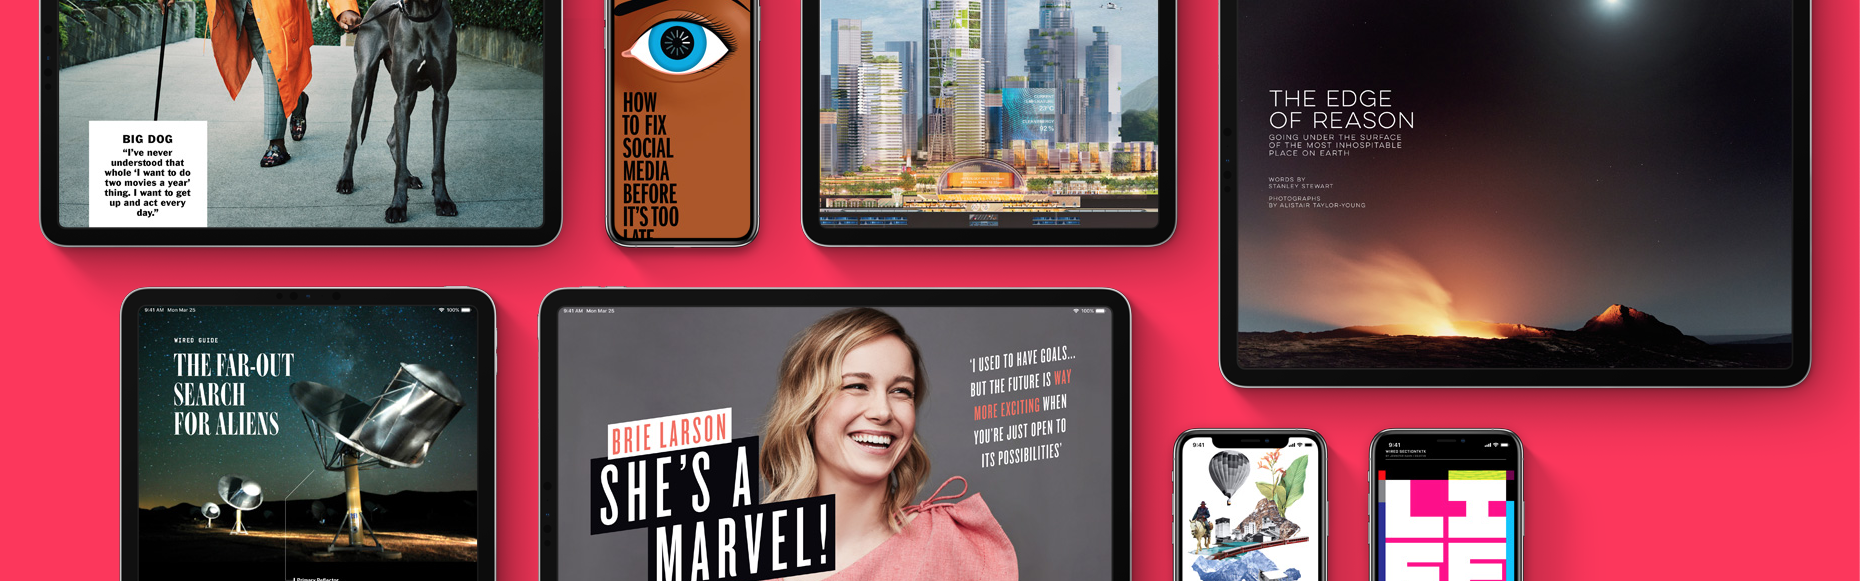 Features von Apple News+ im Überblick, Apple News+, Apple News, Apple News kostenlos, Apple News+ in Deutschland, Apple News+ testen, Hack4Life, Fabian Geissler, Apple News+ welche Magazine sind dabei